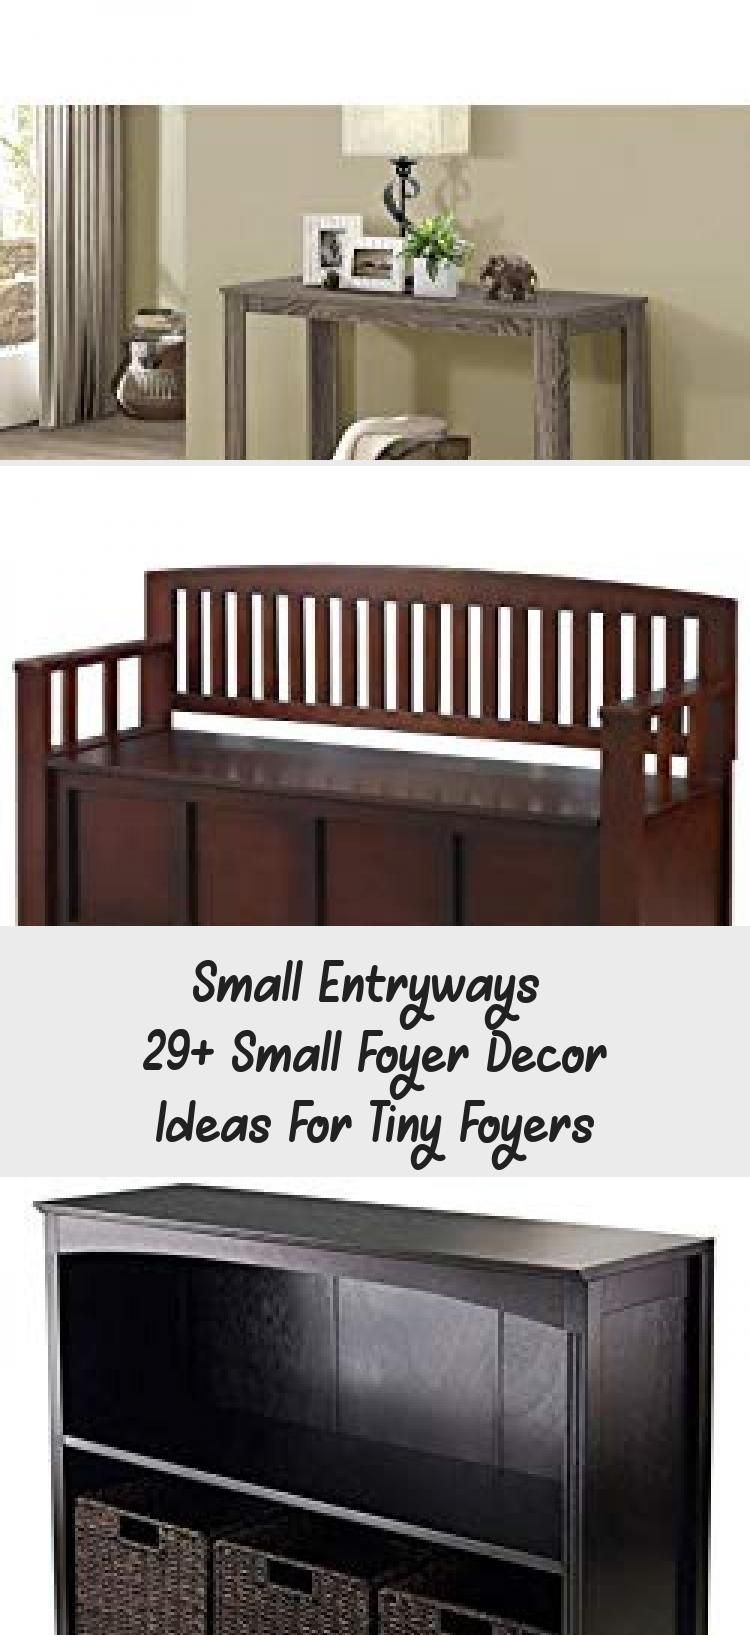 small foyers  small entryways  DIY decorating ideas for small foyers and tiny  small foyers  small entryways  DIY decorating ideas for small foyers and tiny entryways and...